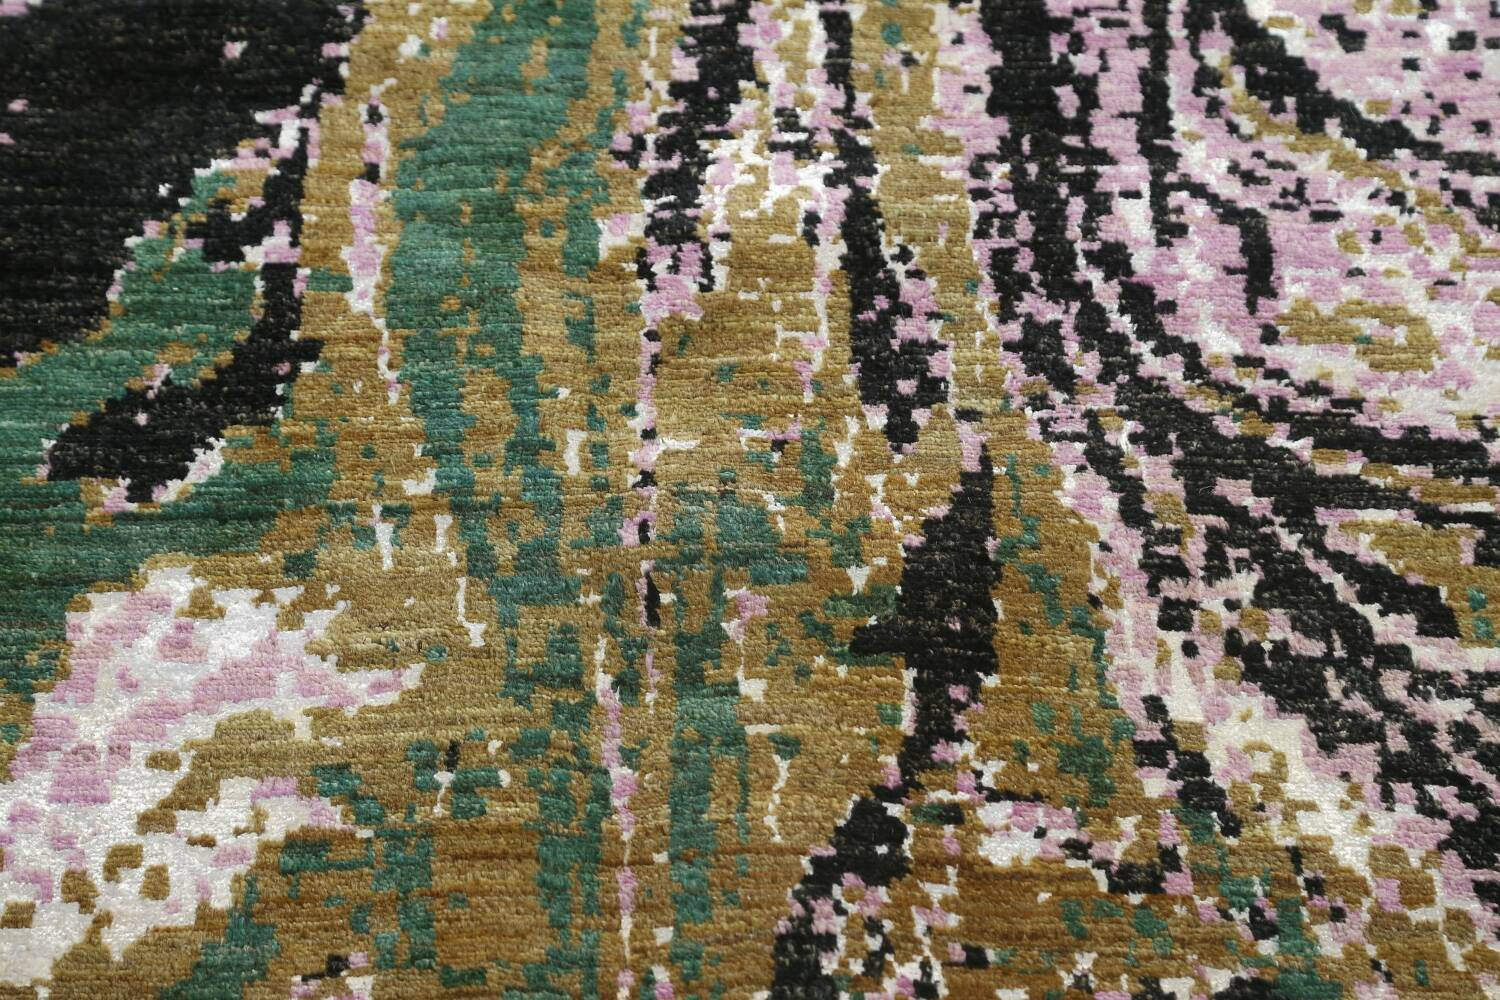 Vegetable Dye Contemporary Abstract Oriental Area Rug 9x12 image 12